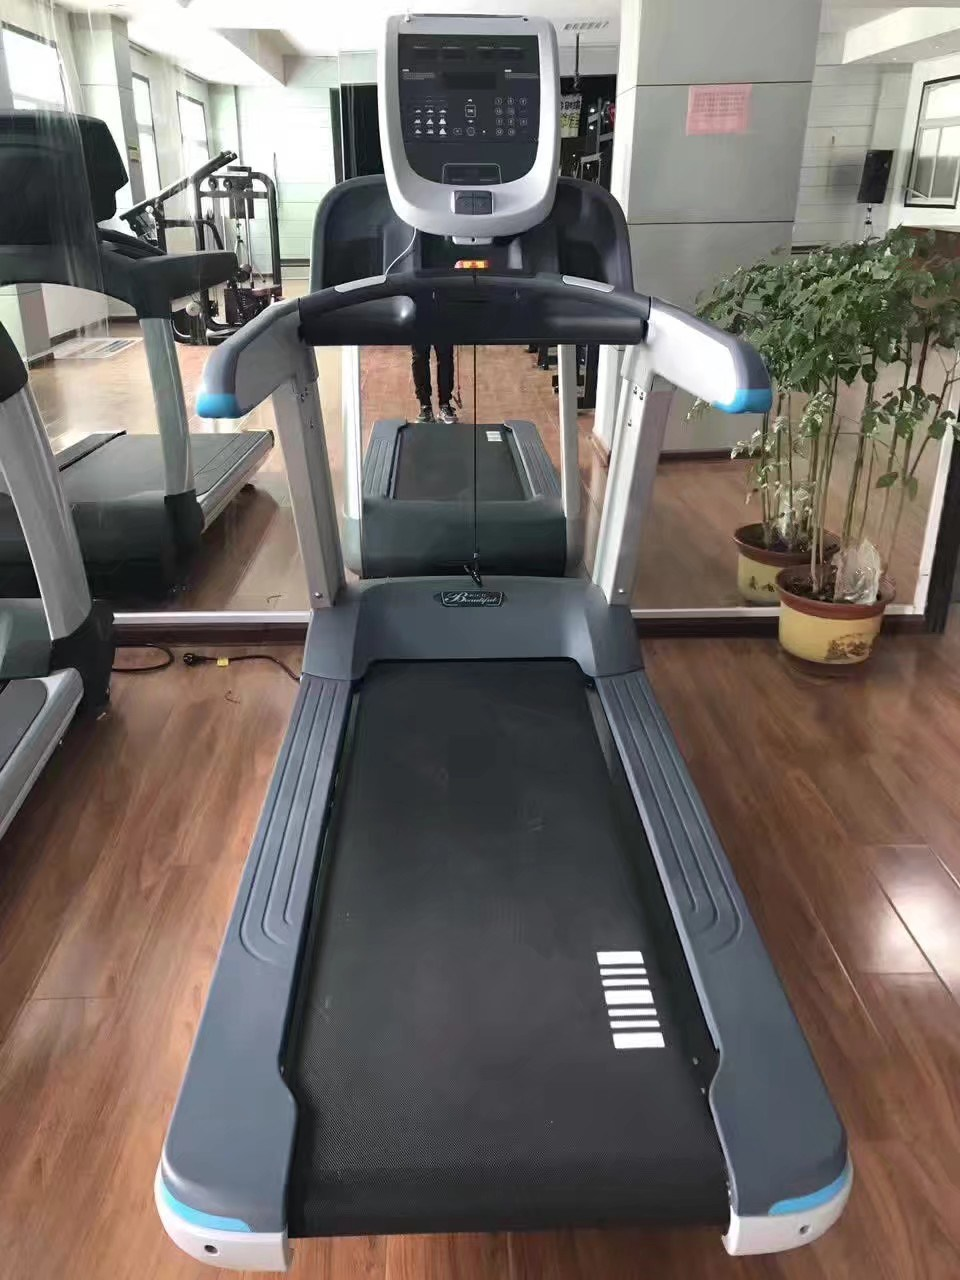 High Quality 2017 Precor Commercial Treadmill Trm 885 (SK-700)